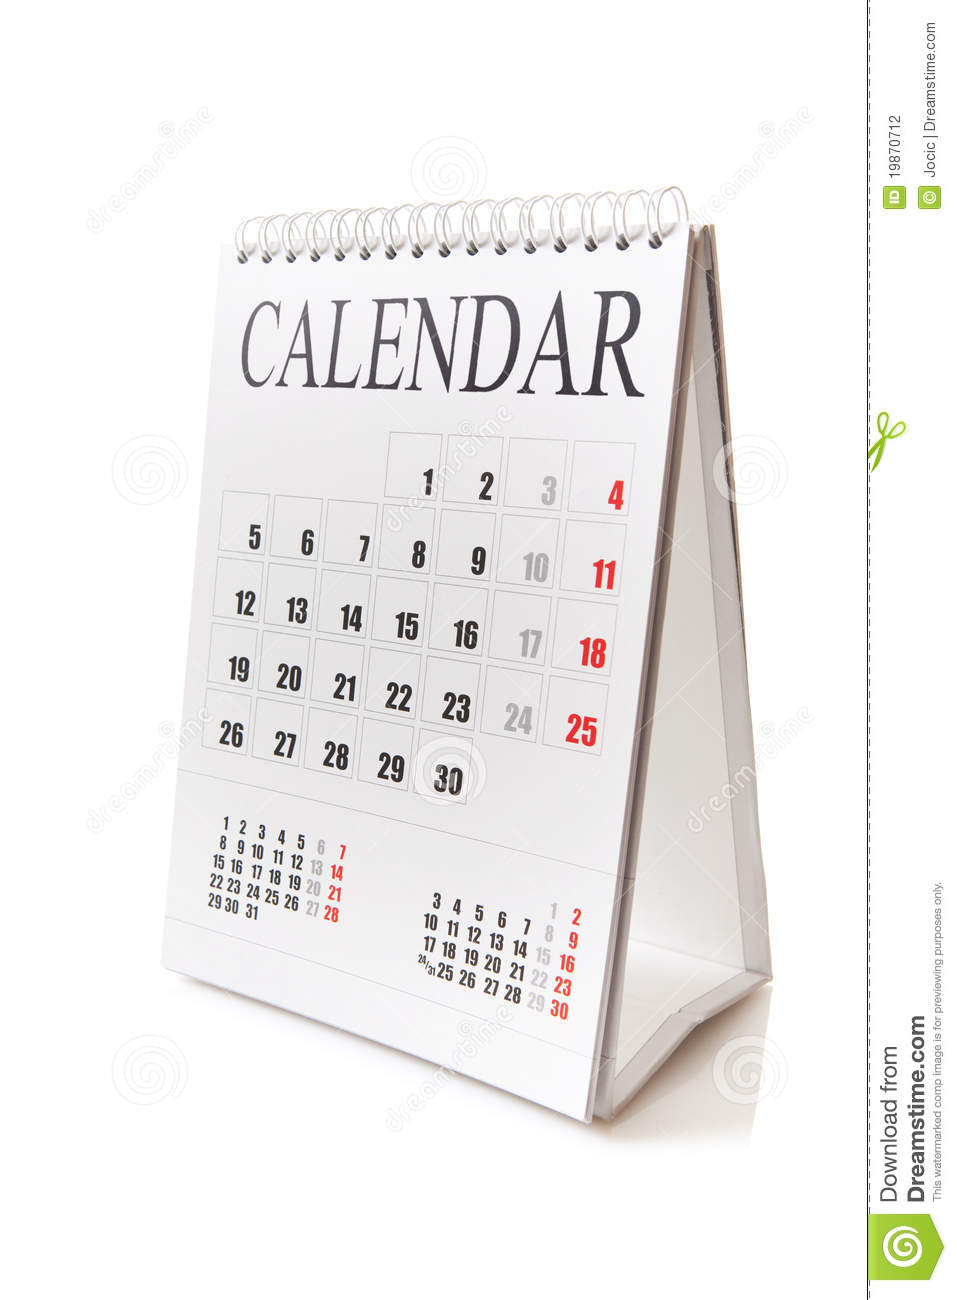 Desk Calendar Photography : Desk calendar stock photography image